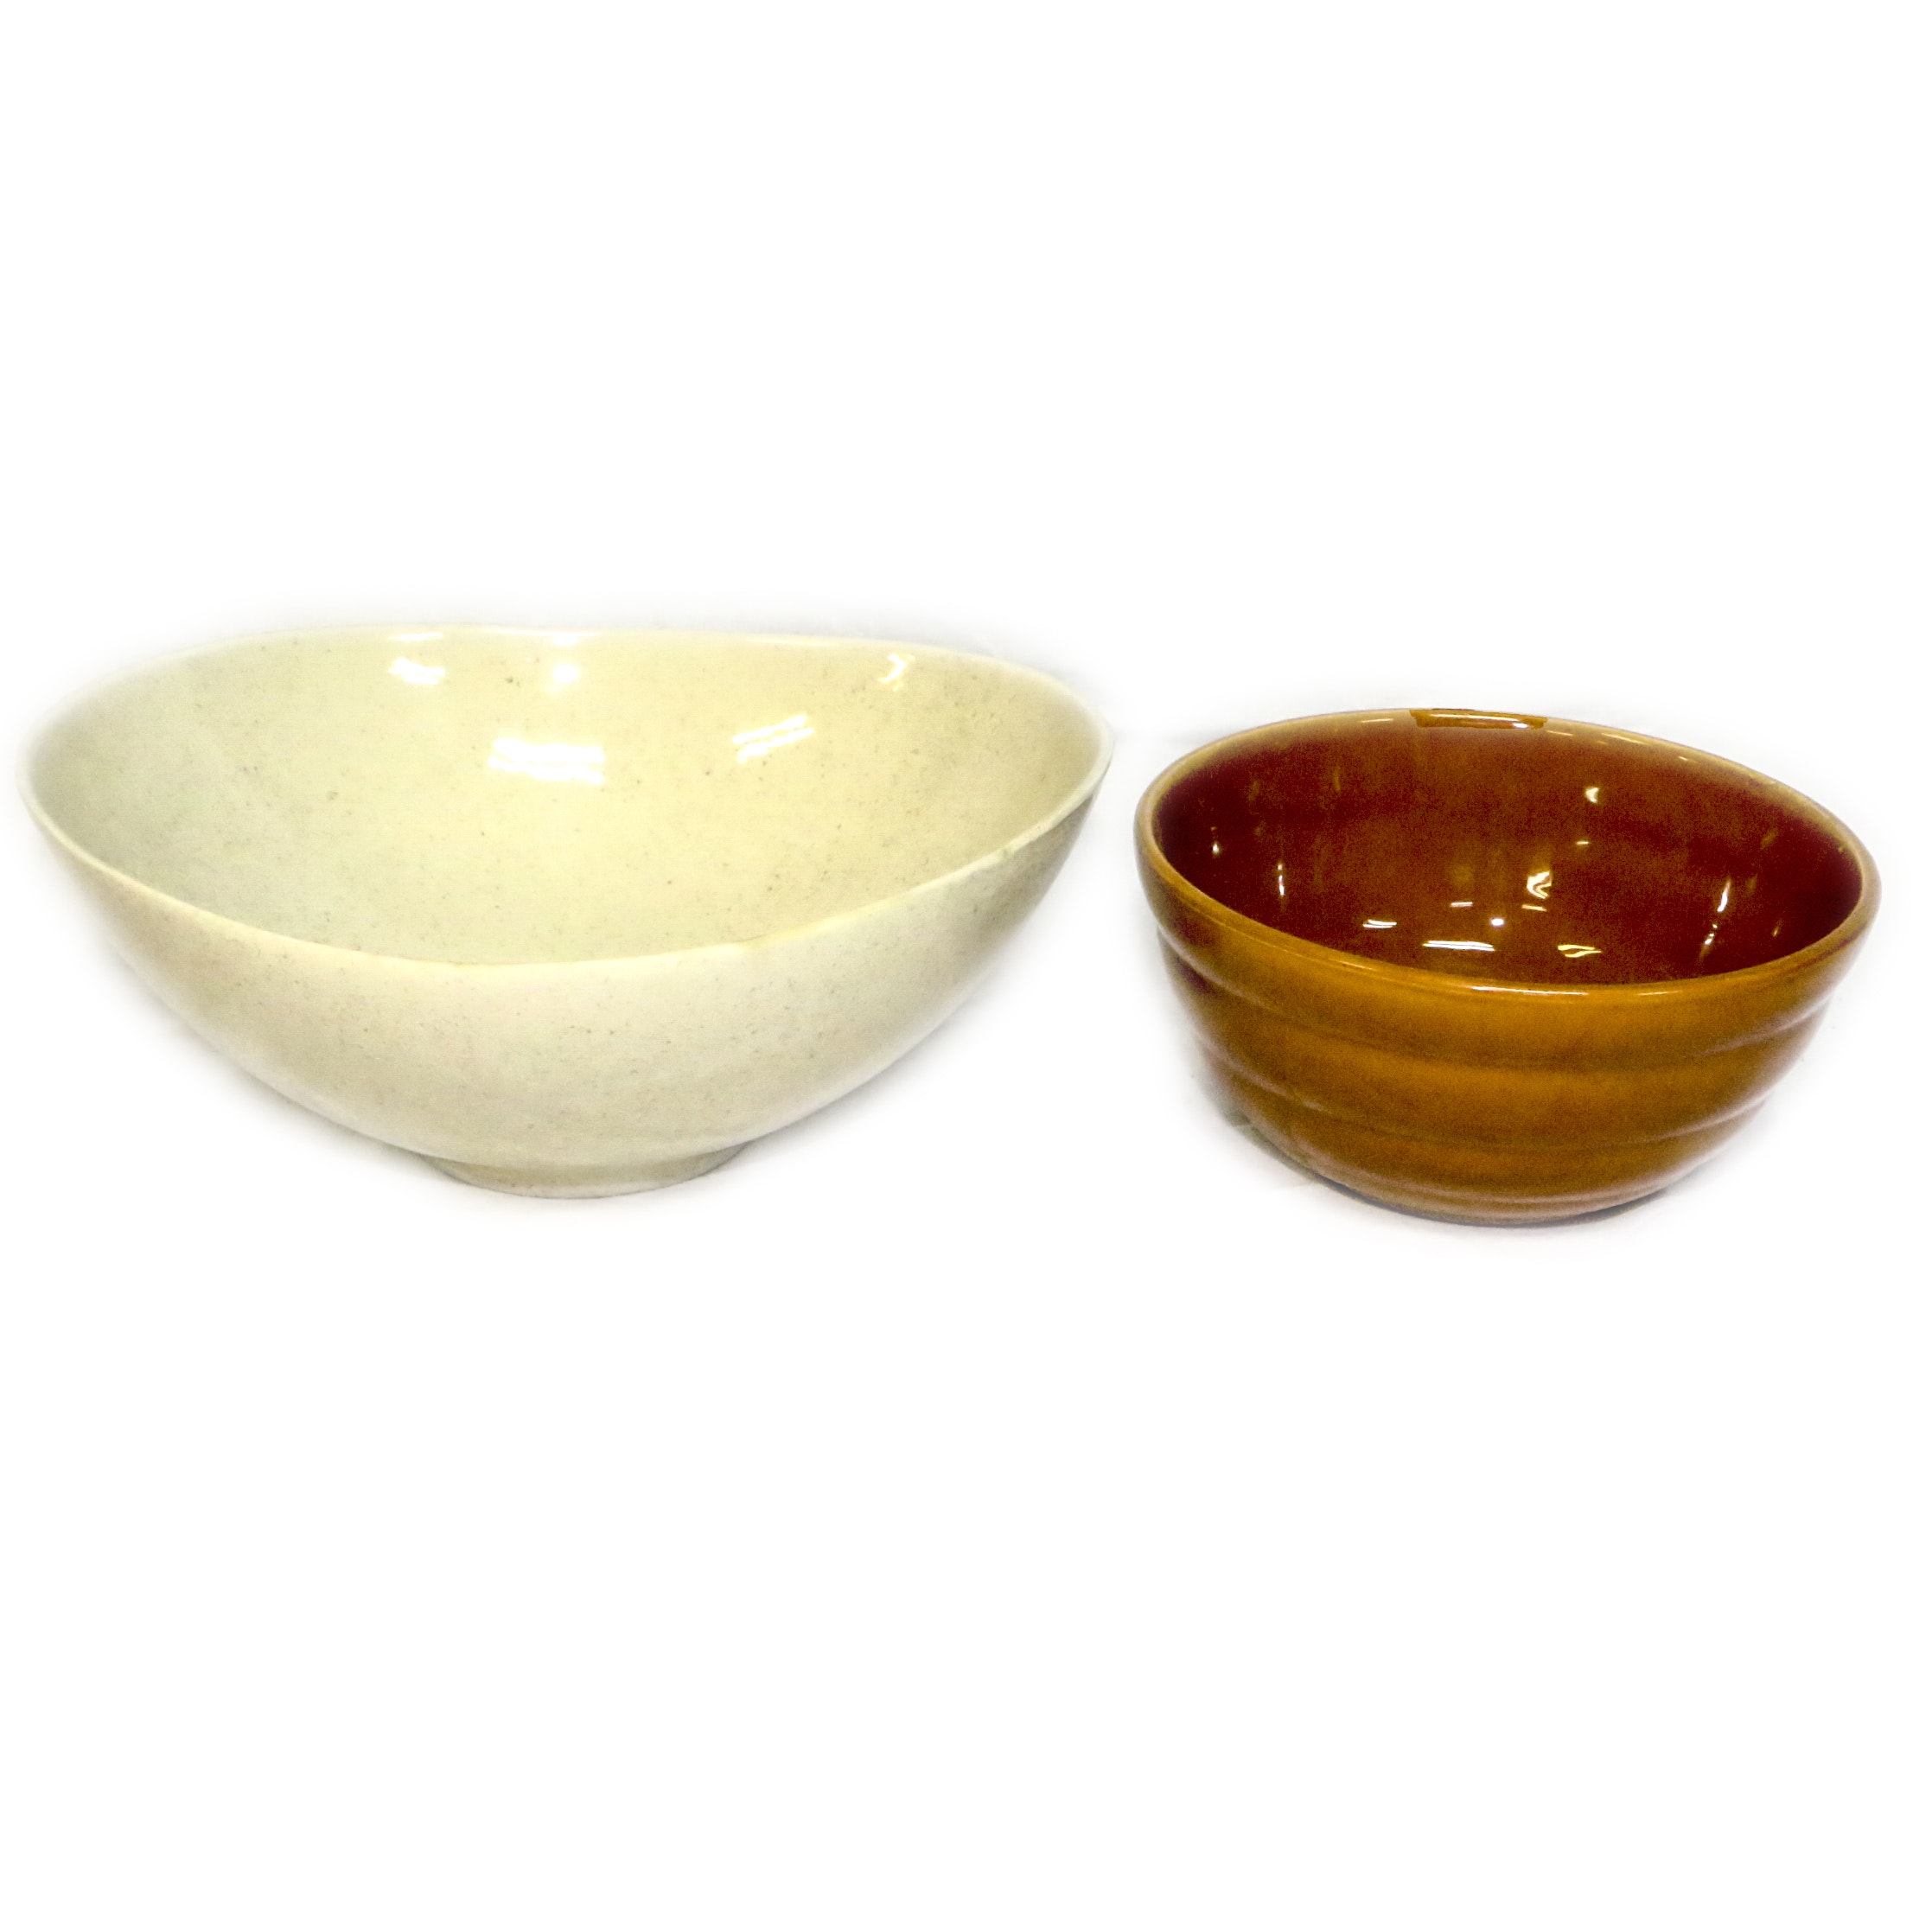 Vintage Red Wing Pottery Salad Bowl with Bauer Mixing Bowl